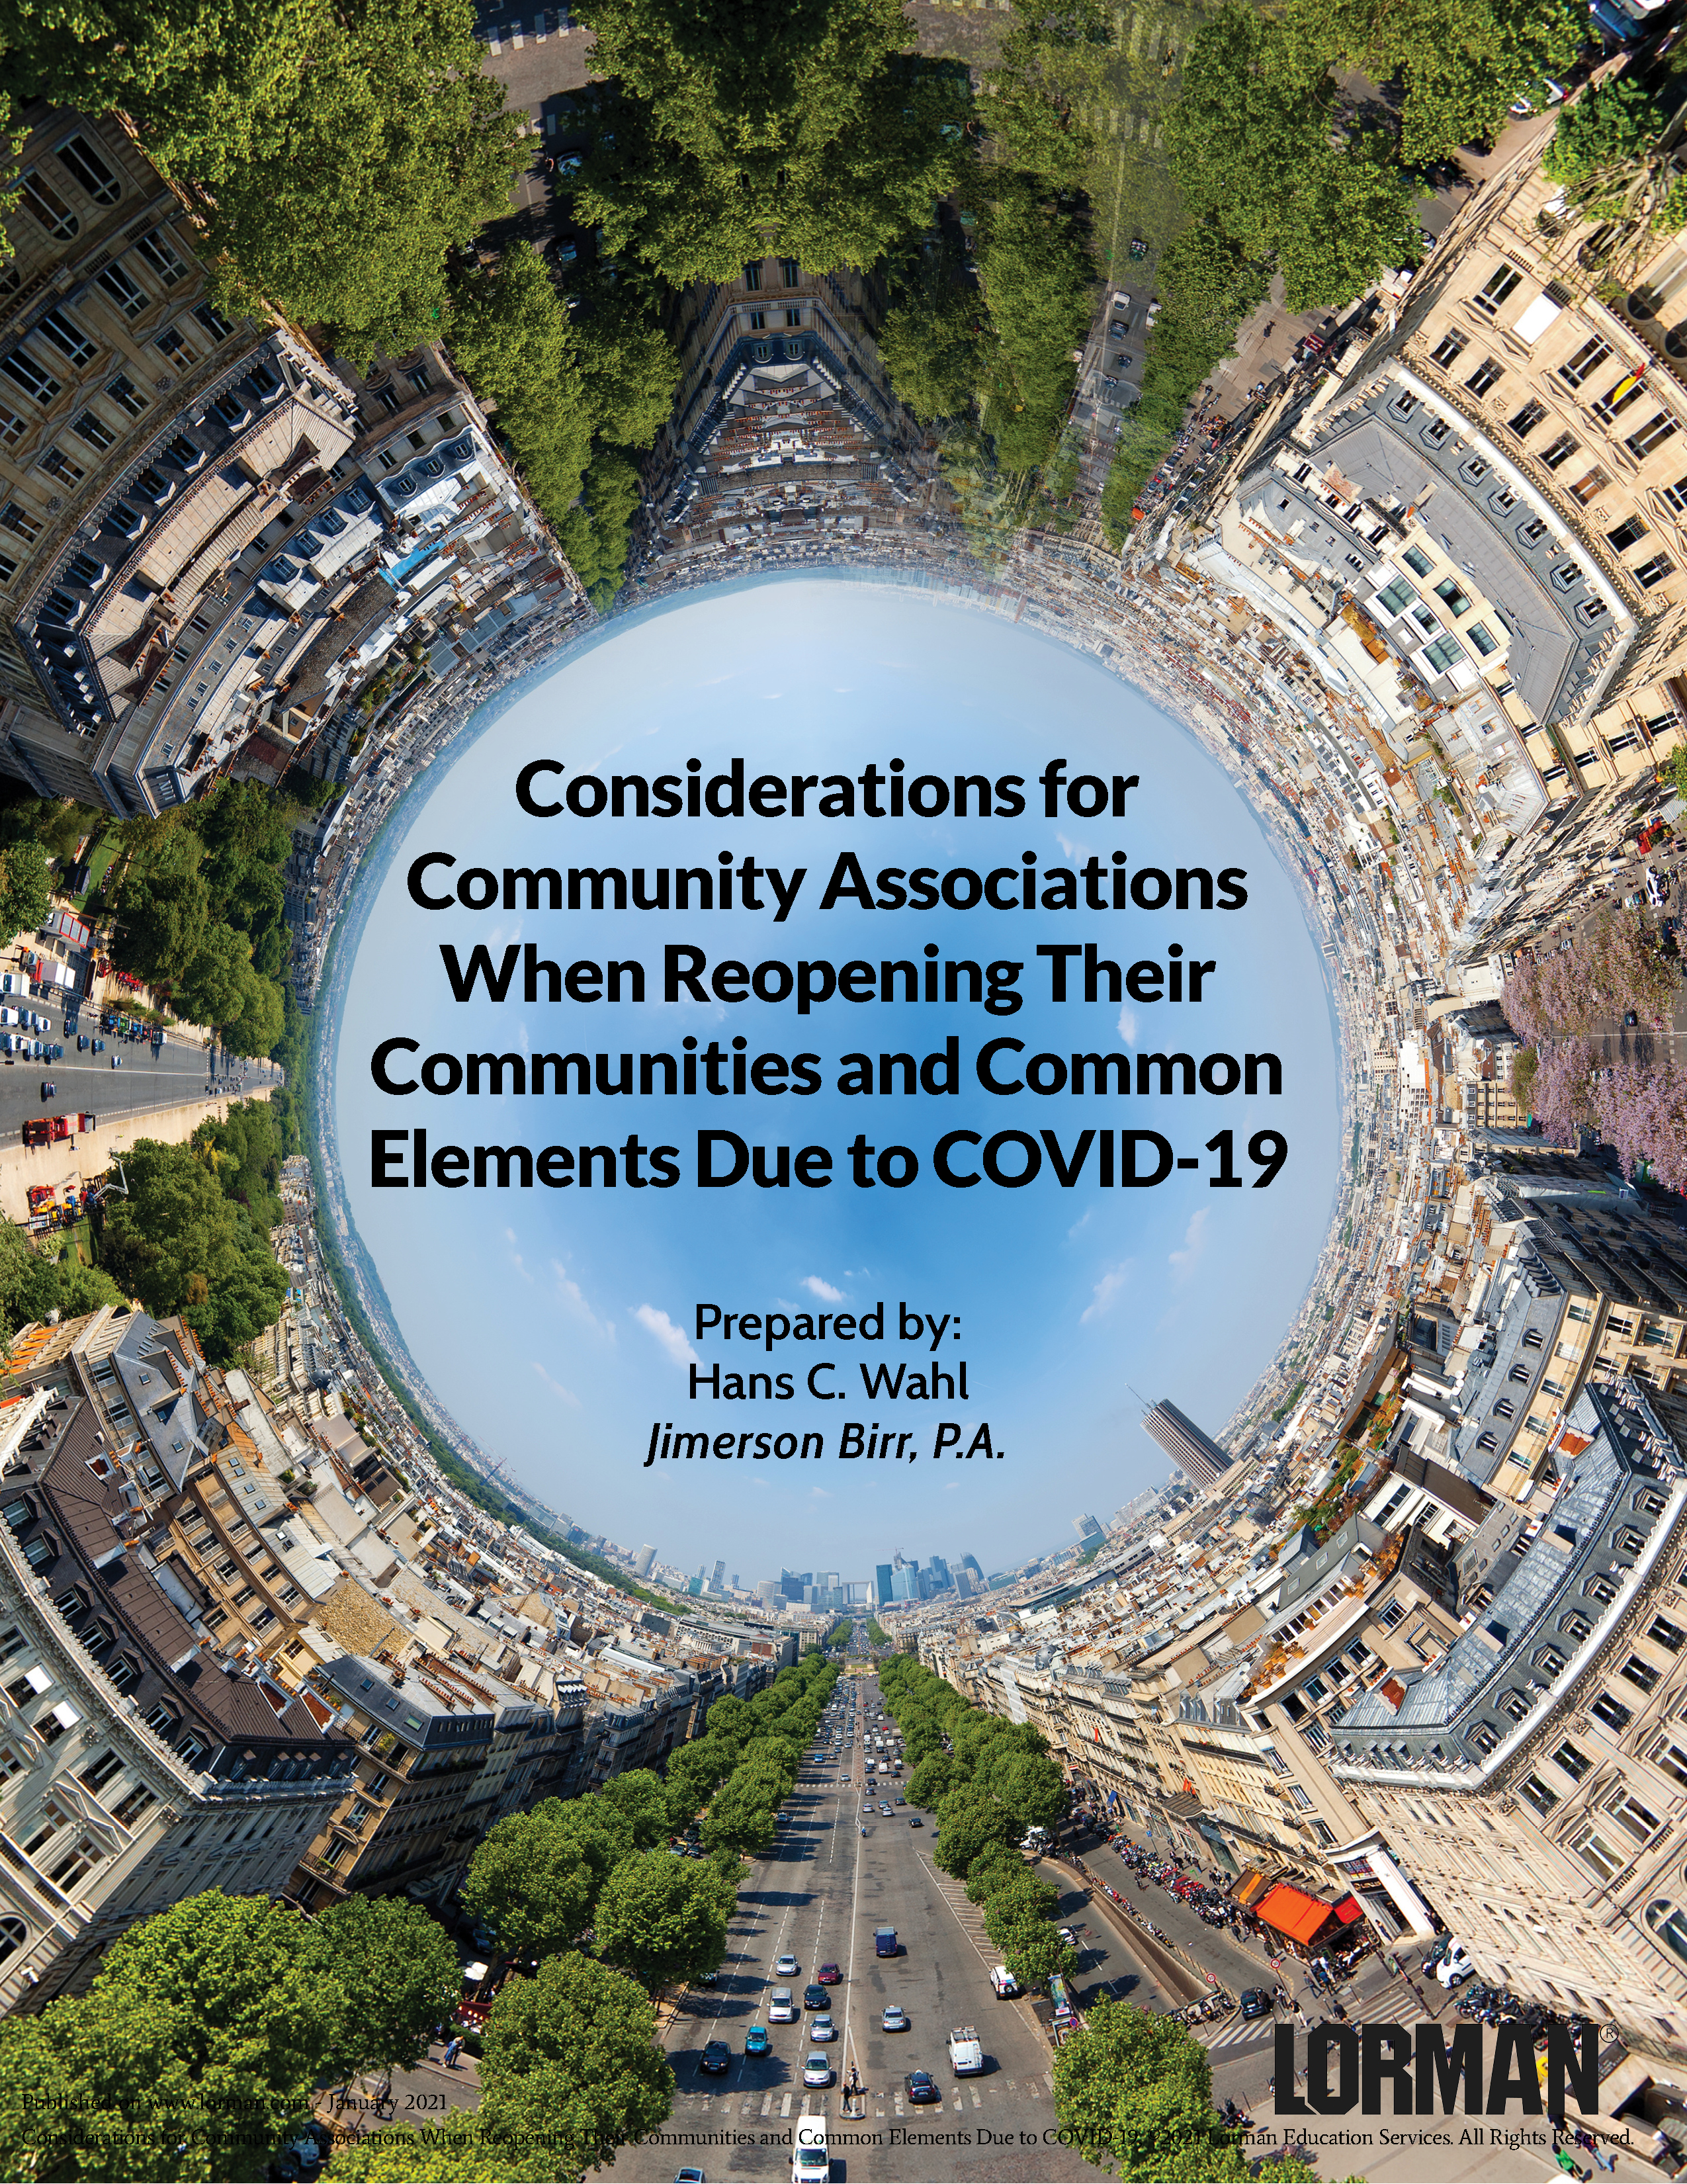 Considerations for Community Associations When Reopening Their Communities